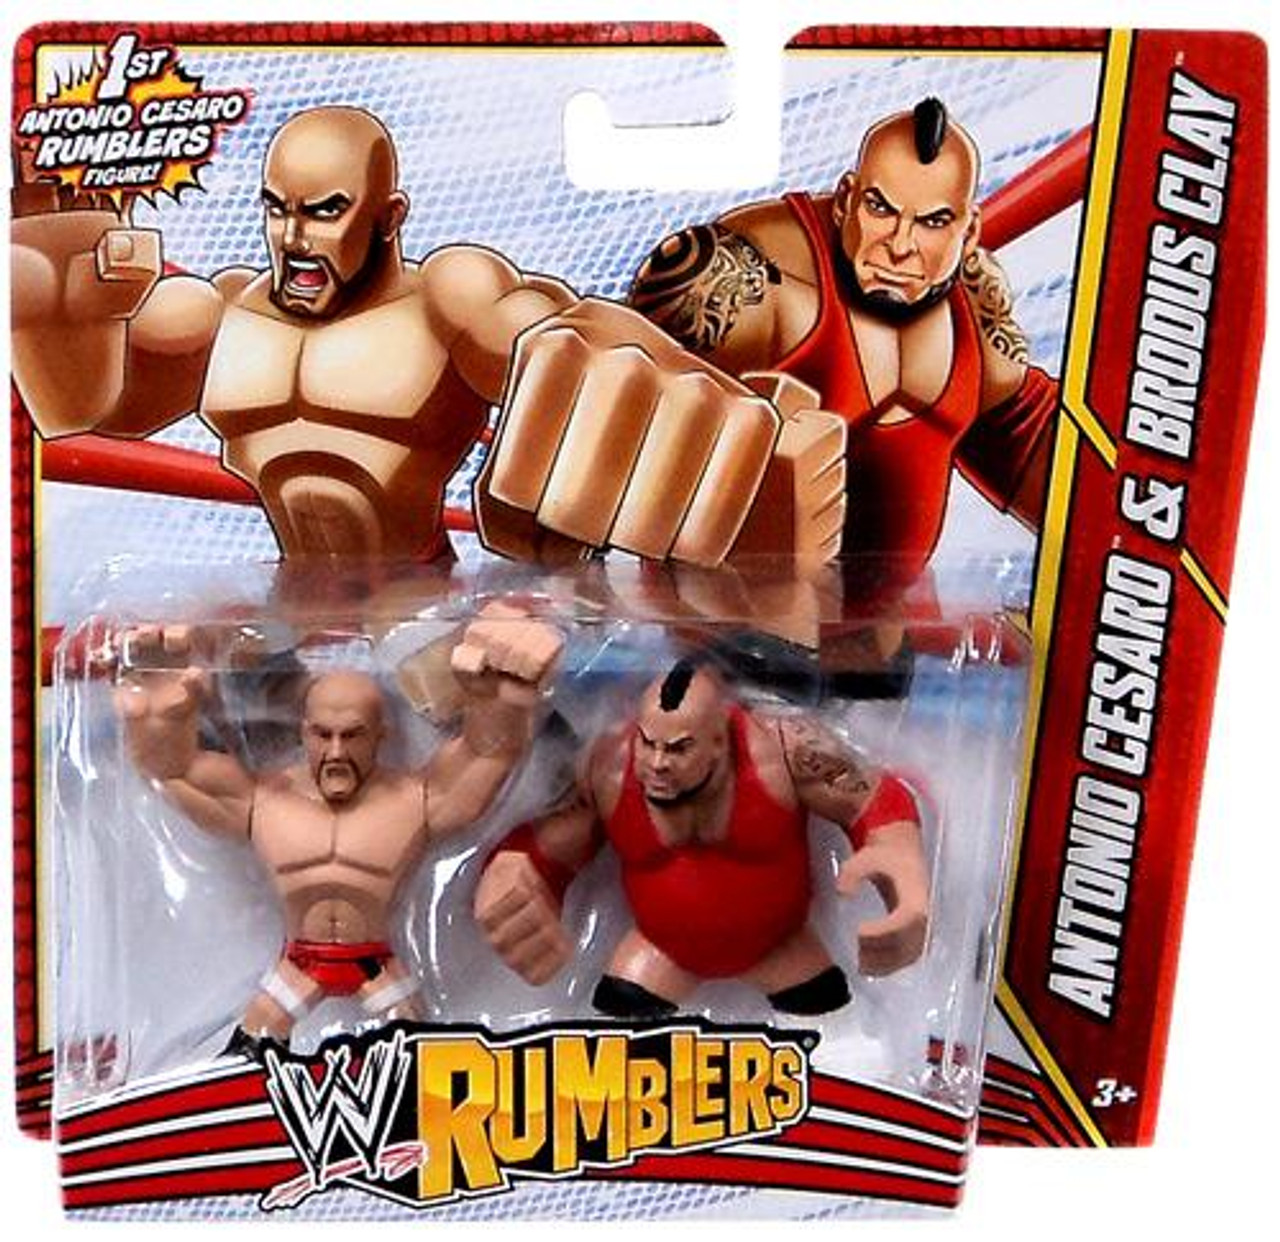 WWE Wrestling Rumblers Series 3 Antonio Cesaro & Brodus Clay Mini Figure 2-Pack